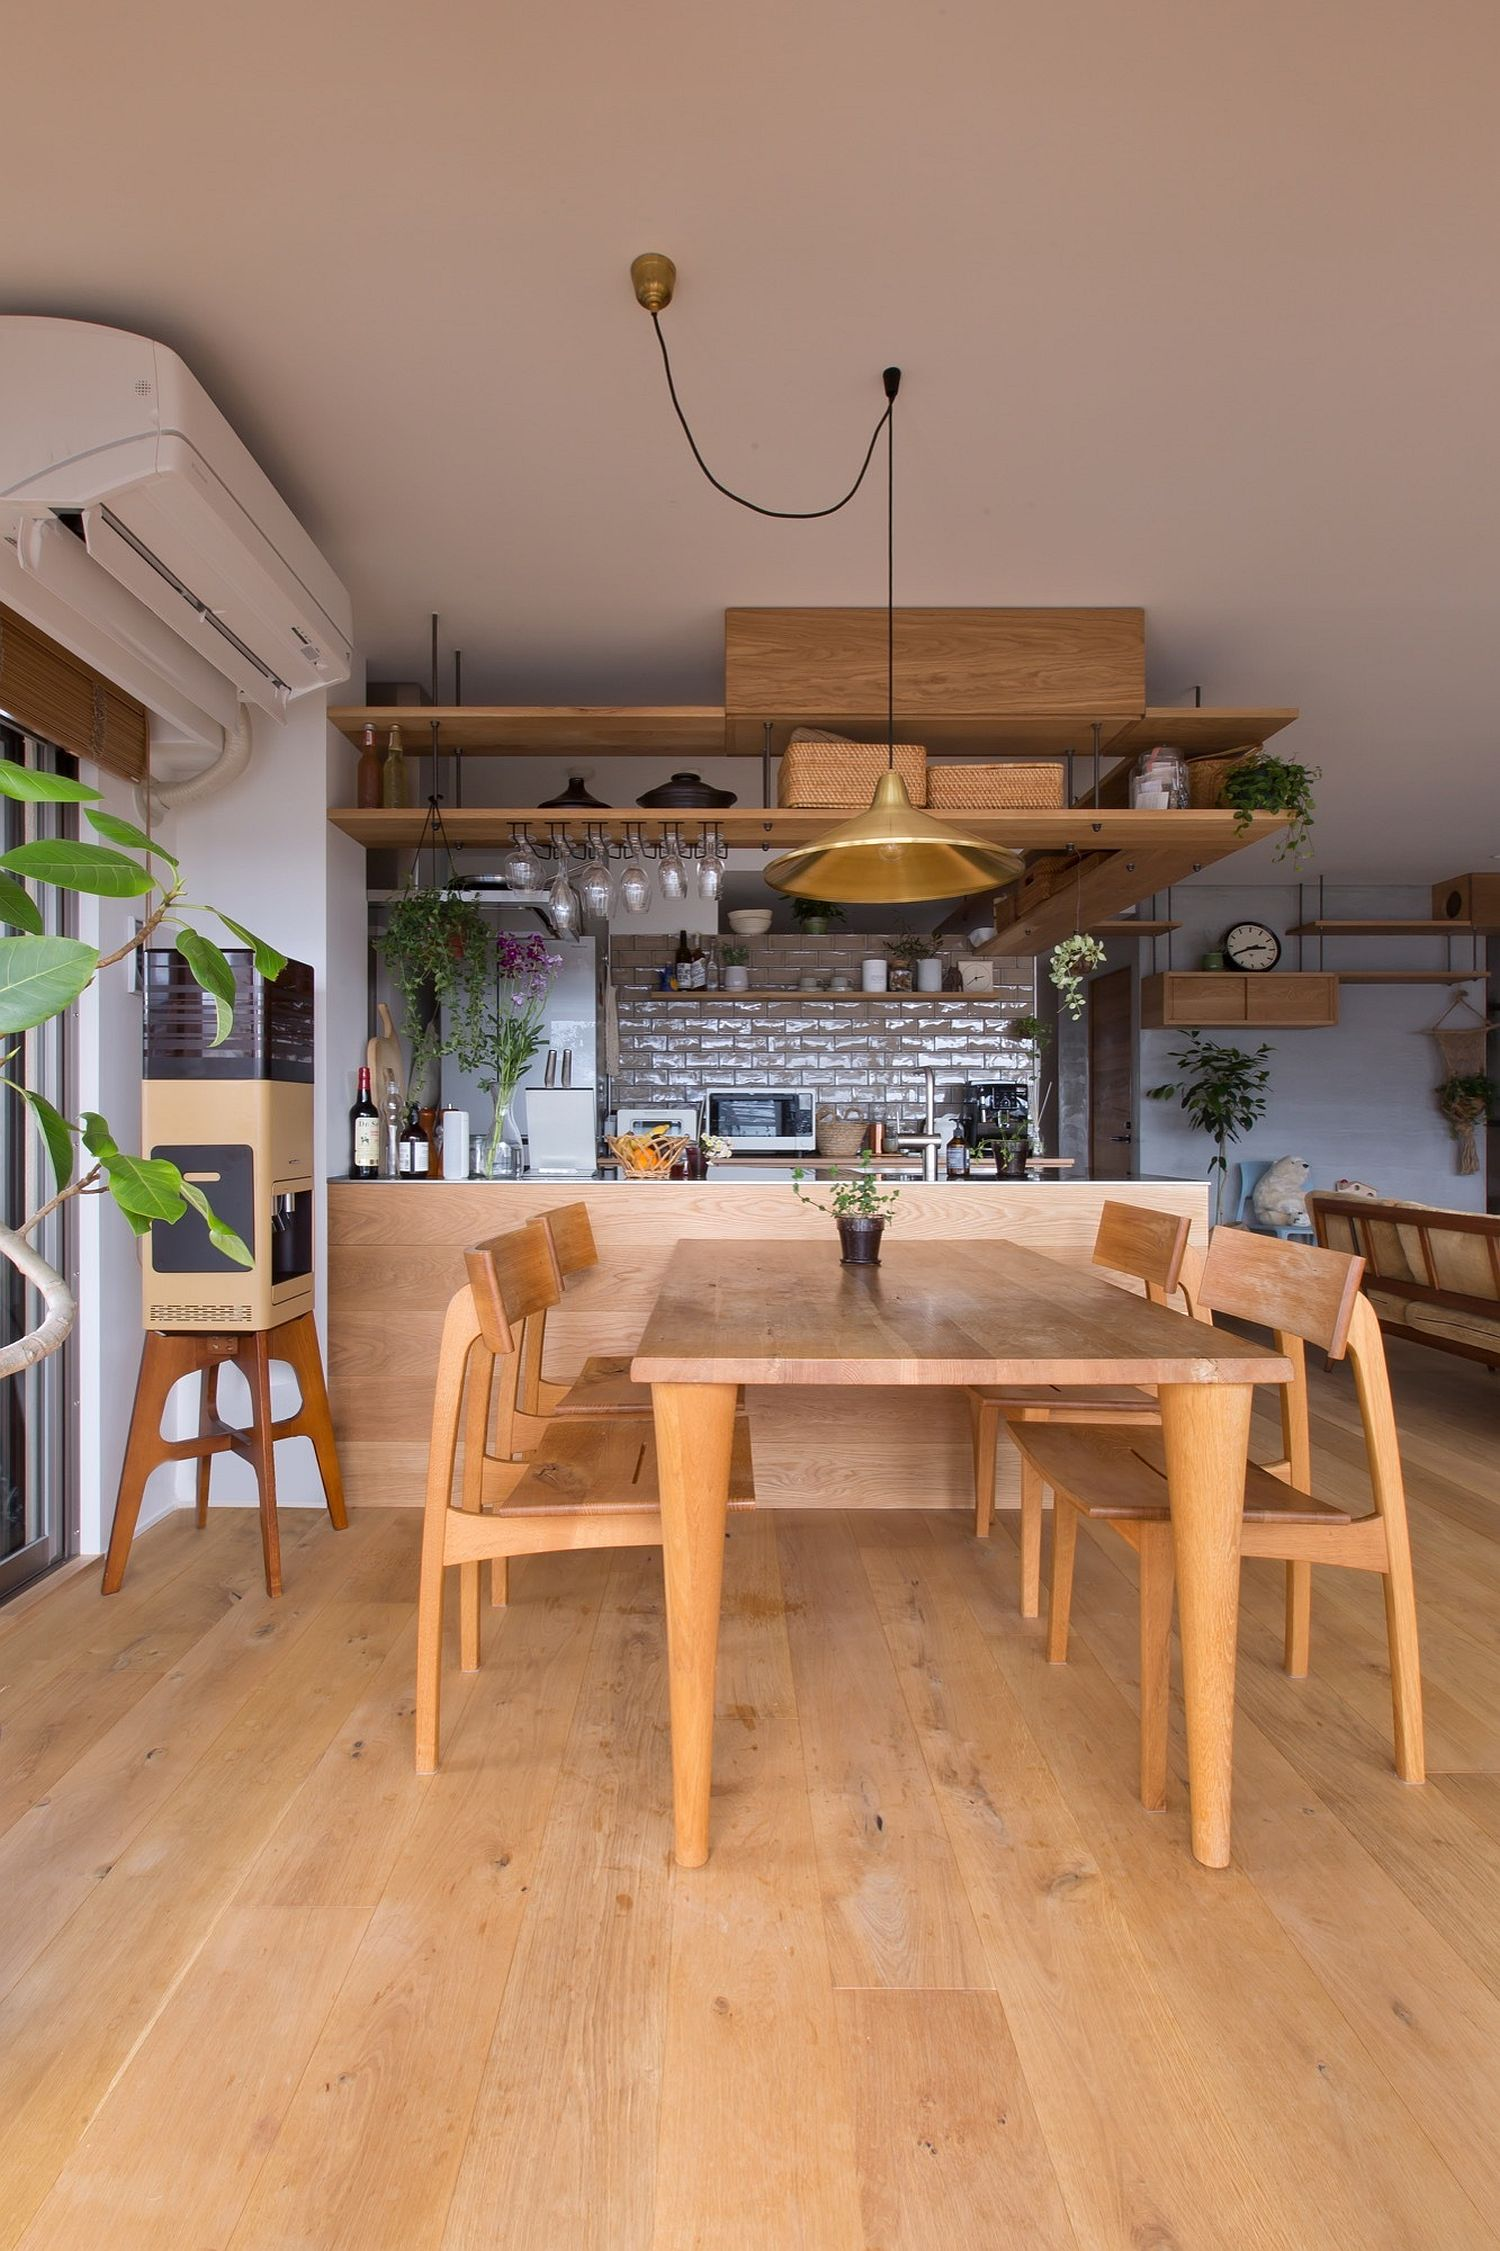 Space above the kitchen area has been used to the hilt in this cat-friendly apartment